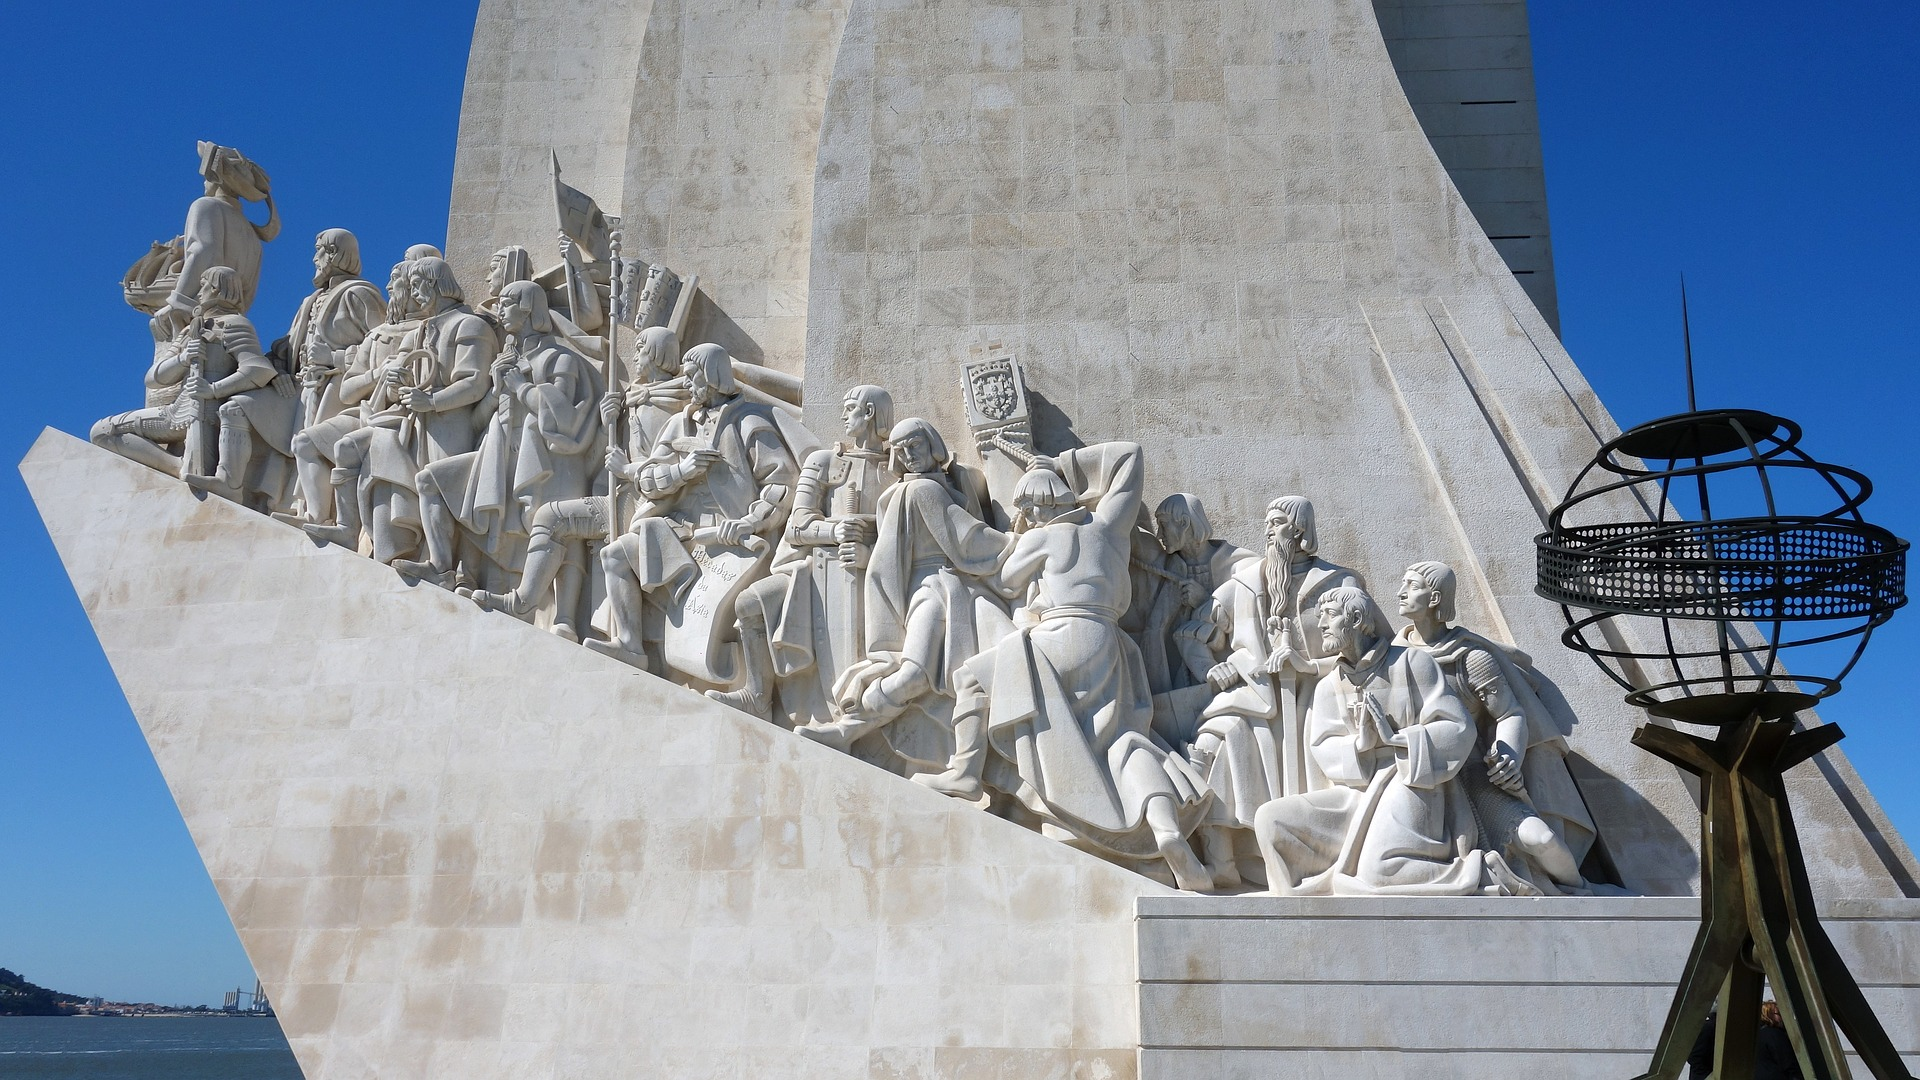 monument-of-the-discoveries-3264431_1920